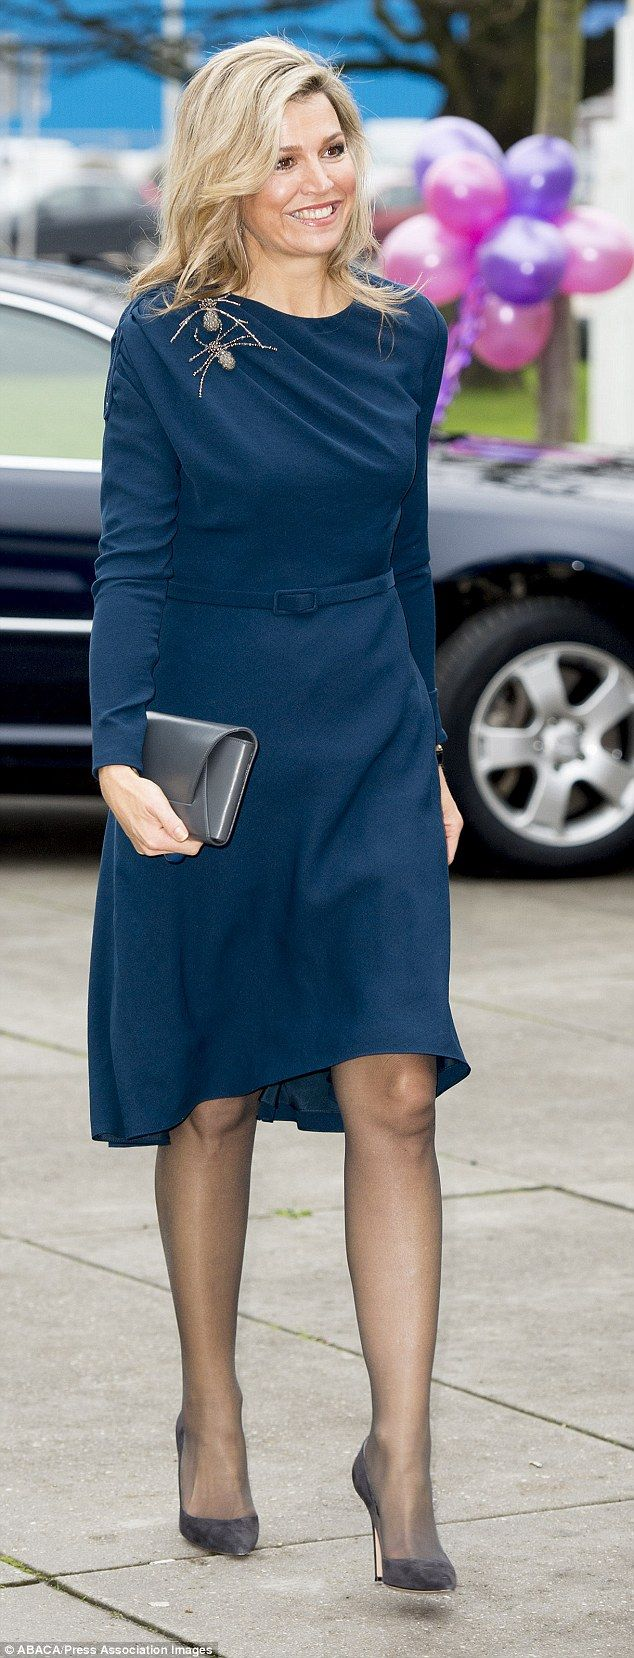 The 44-year-old Dutch royal's sophisticated long-sleeved dress with a matching belt gather...